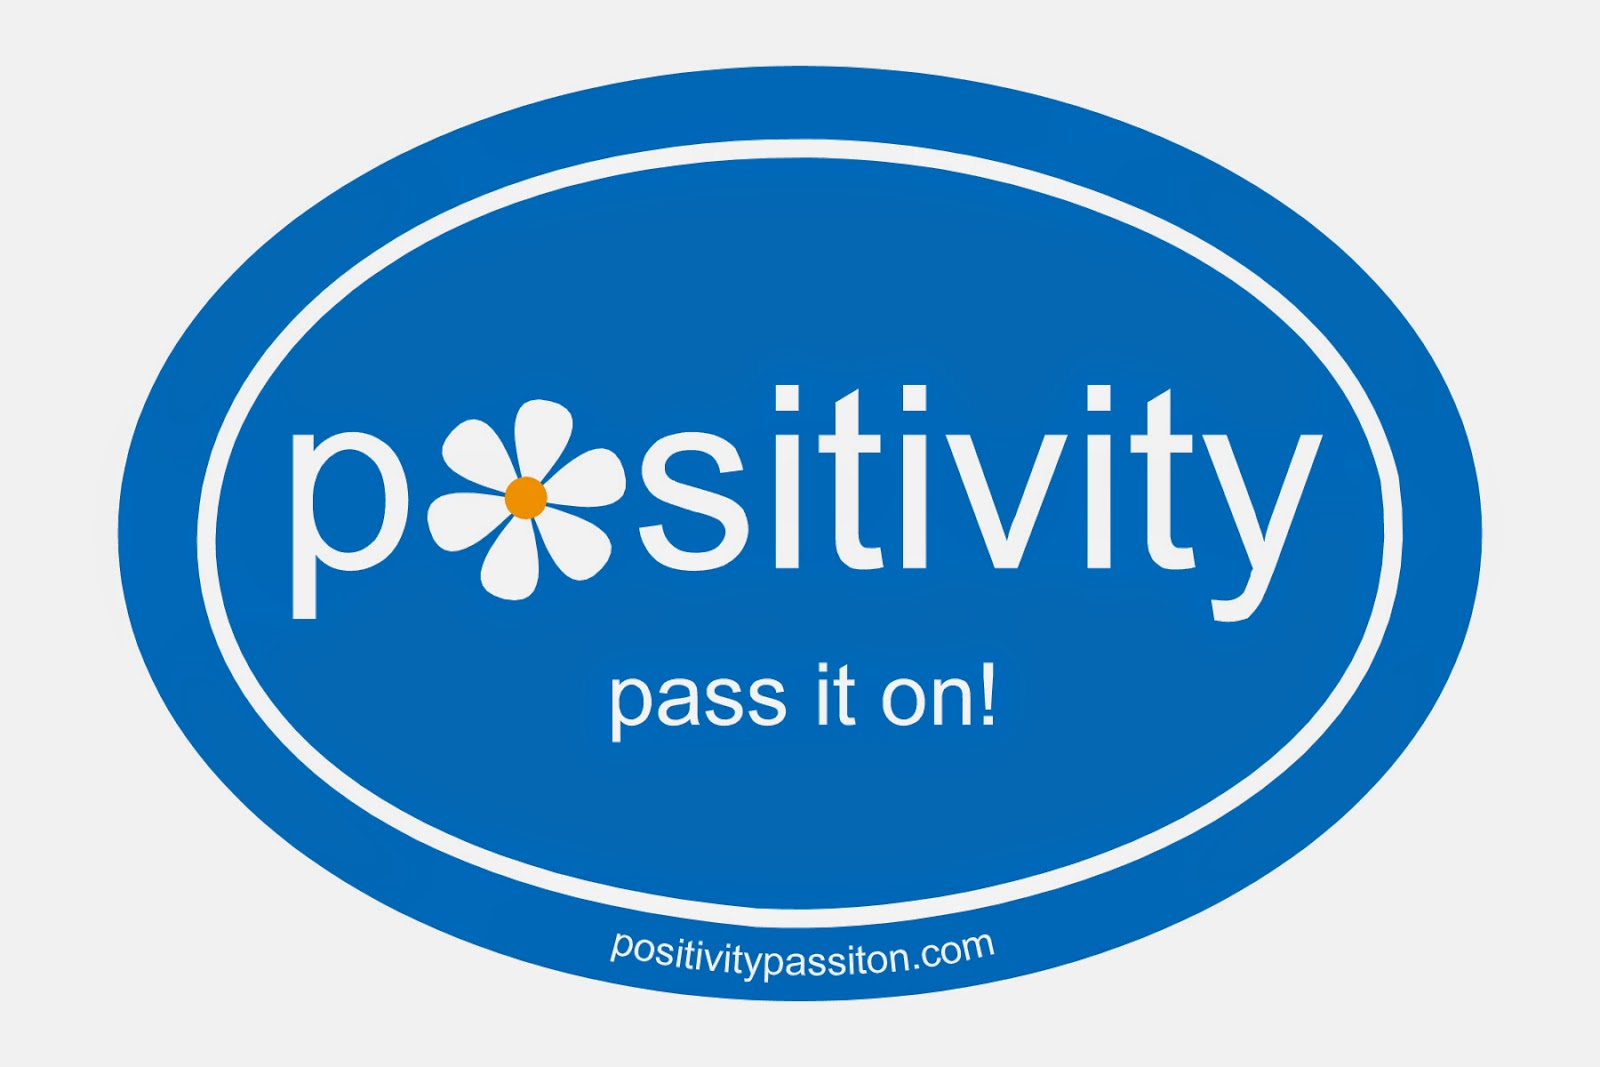 positivty pass it on